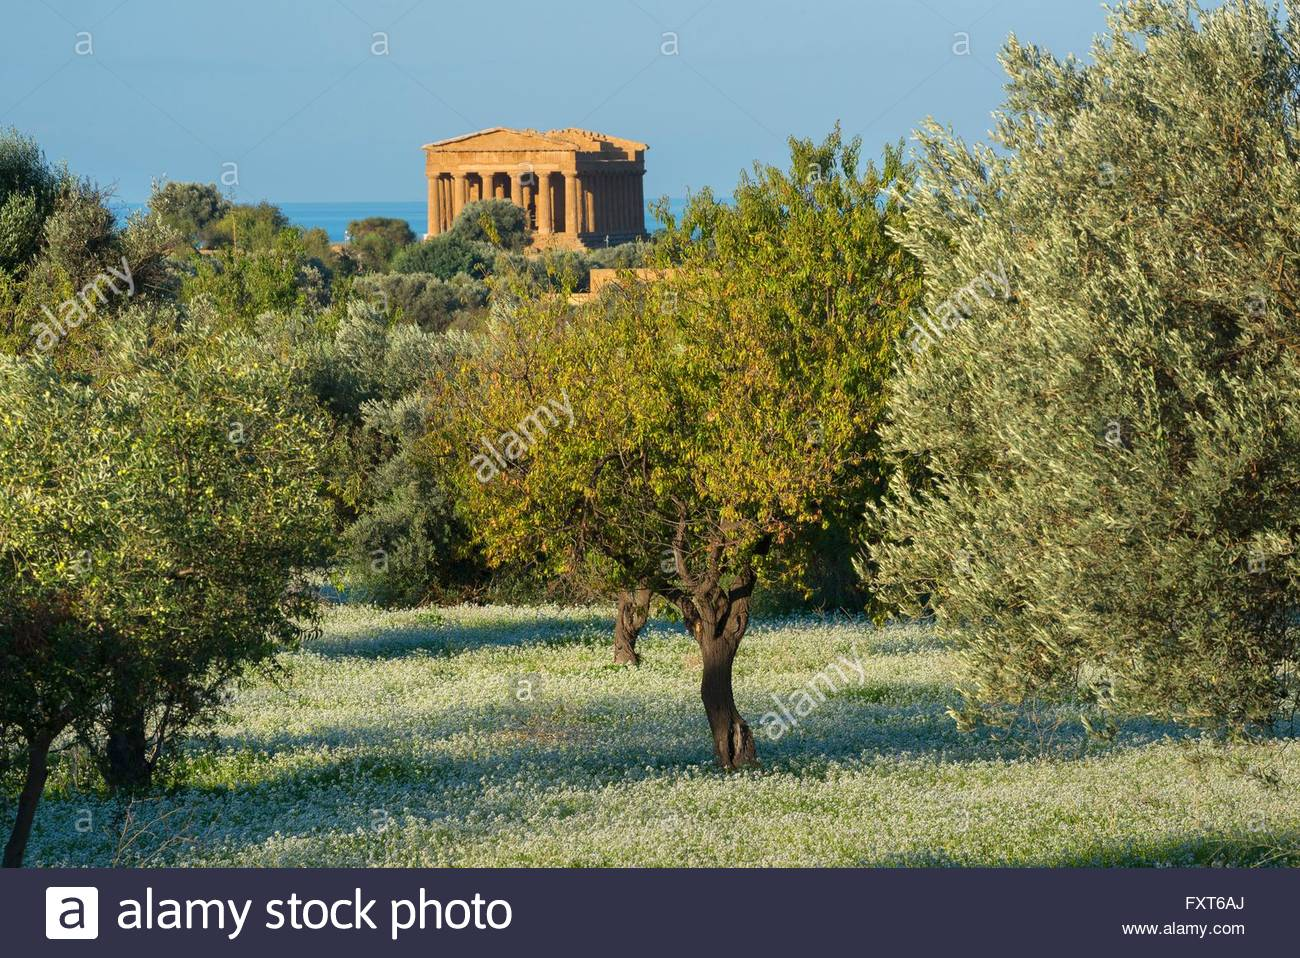 Olive grove and the Temple of Concordia, Valley of the Temples, Agrigento, Sicily, Italy - Stock Image